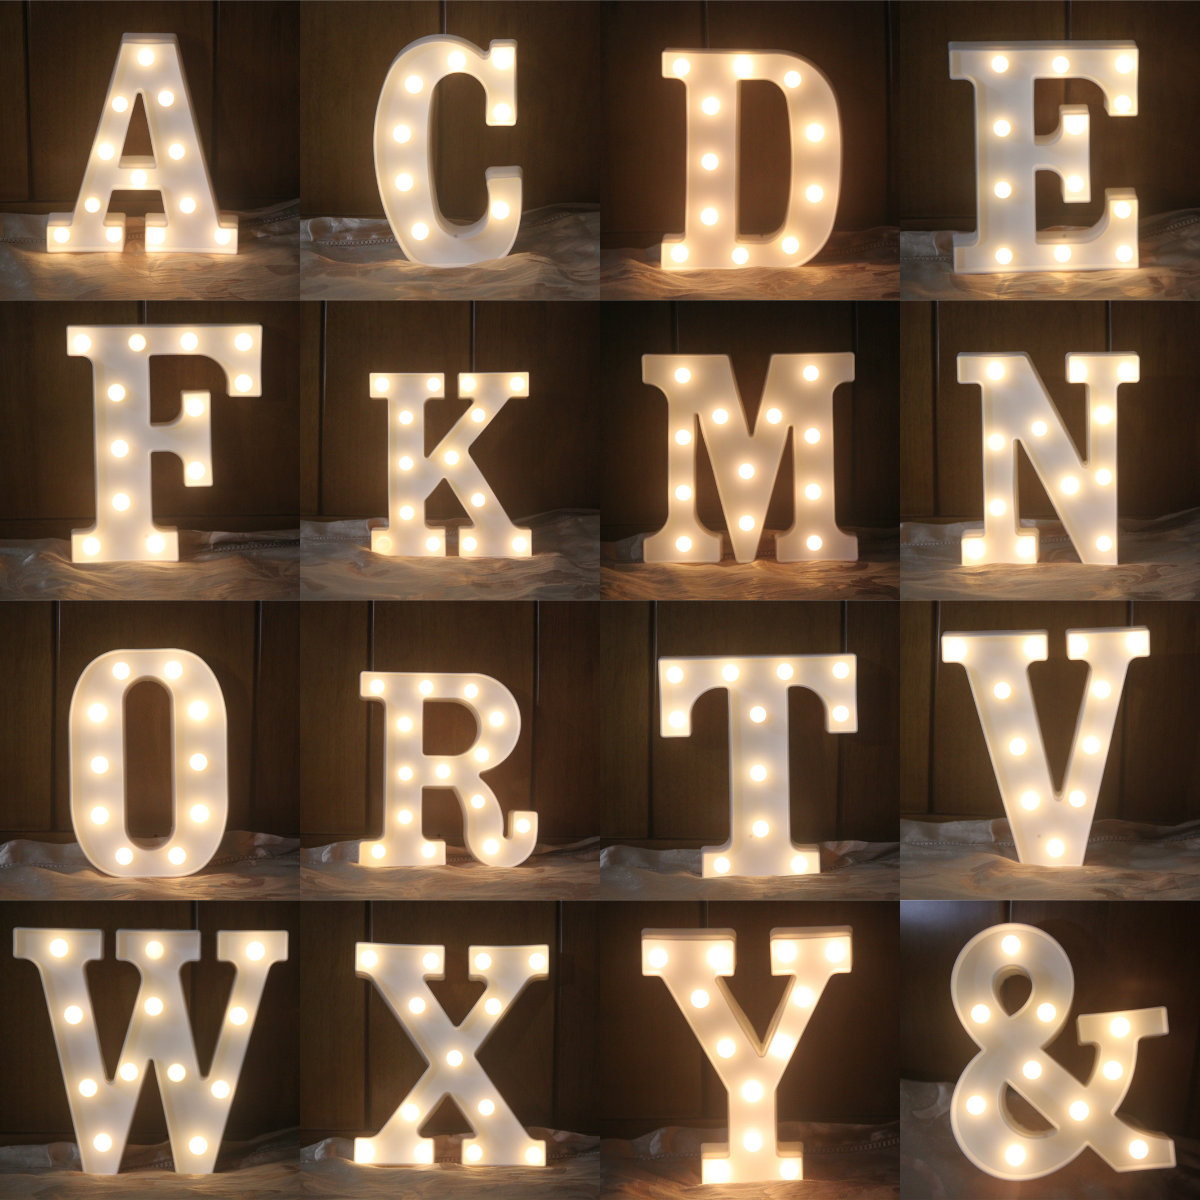 when you choose other letter please note in your order which one you want or we will send you one randomly